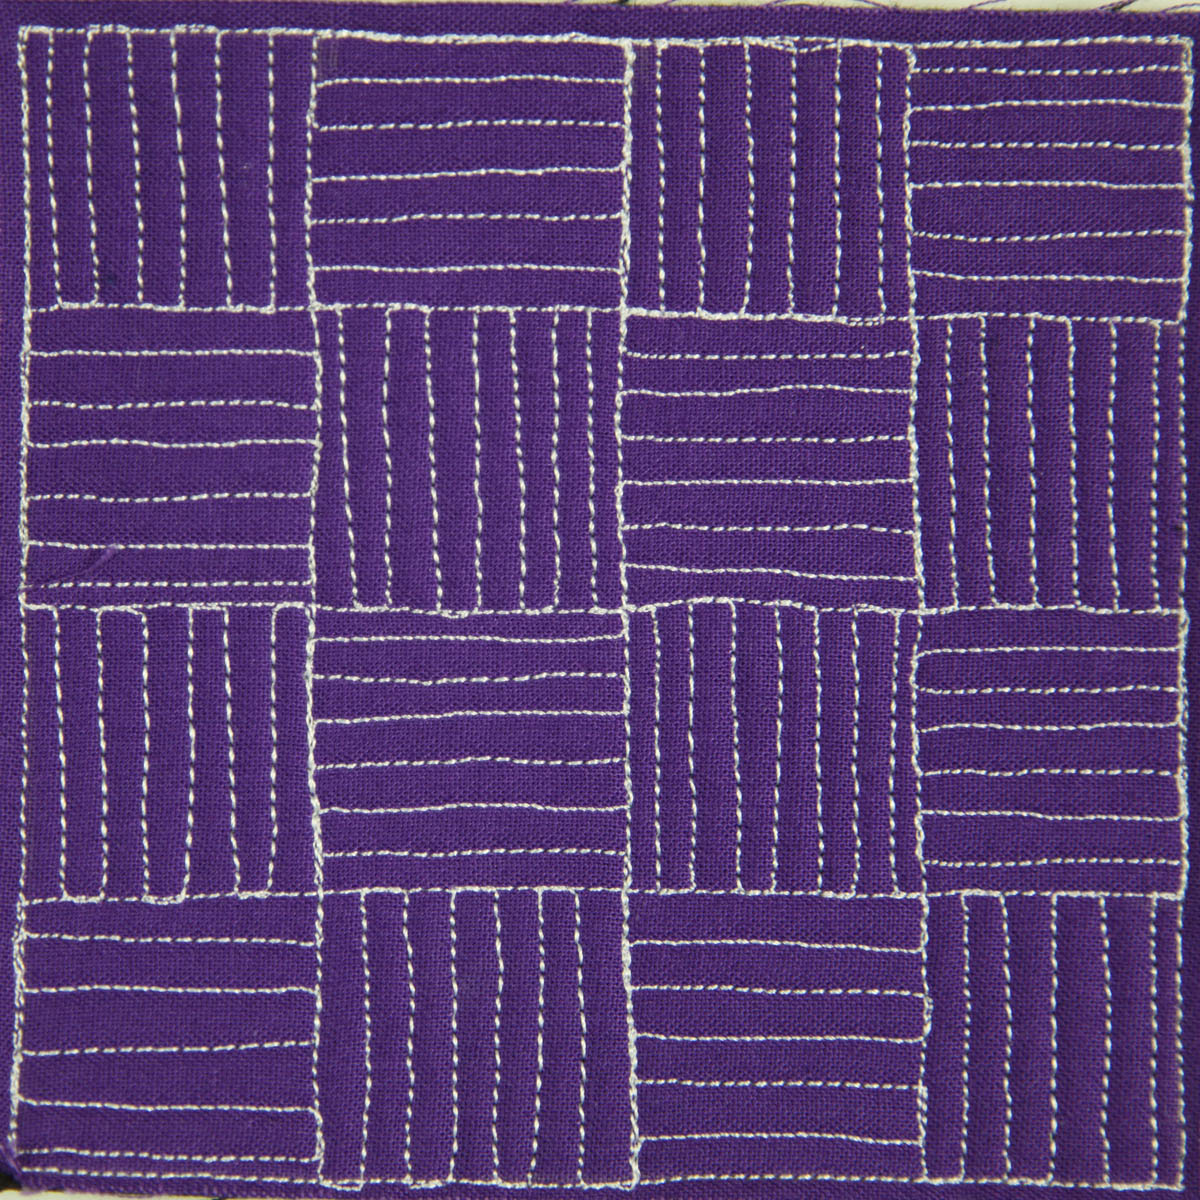 free motion quilting templates - the free motion quilting project day 19 checkerboard